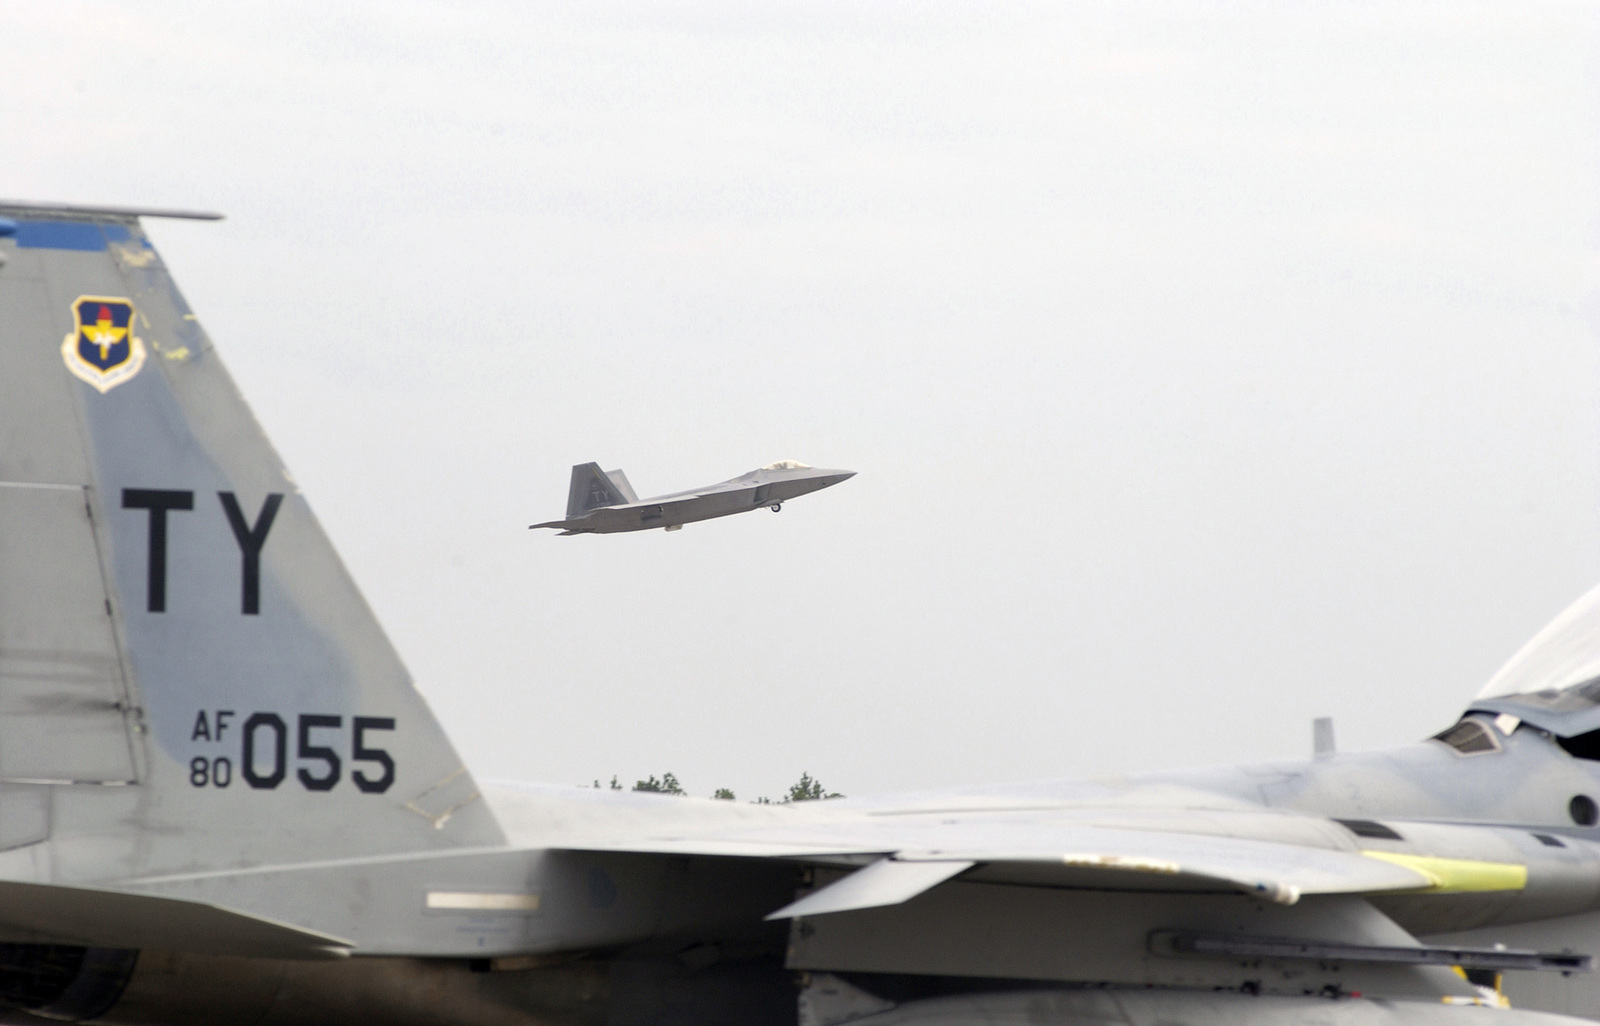 A US Air Force (USAF) 43rd Fighter Squadron (FS) F/A-22 Raptor Advanced Tactical Fighter (ATF) makes a low pass before landing at Tyndall Air Force Base (AFB), Florida (FL), while in the foreground sits a parked 95th FS F-15 Eagle fighter aircraft